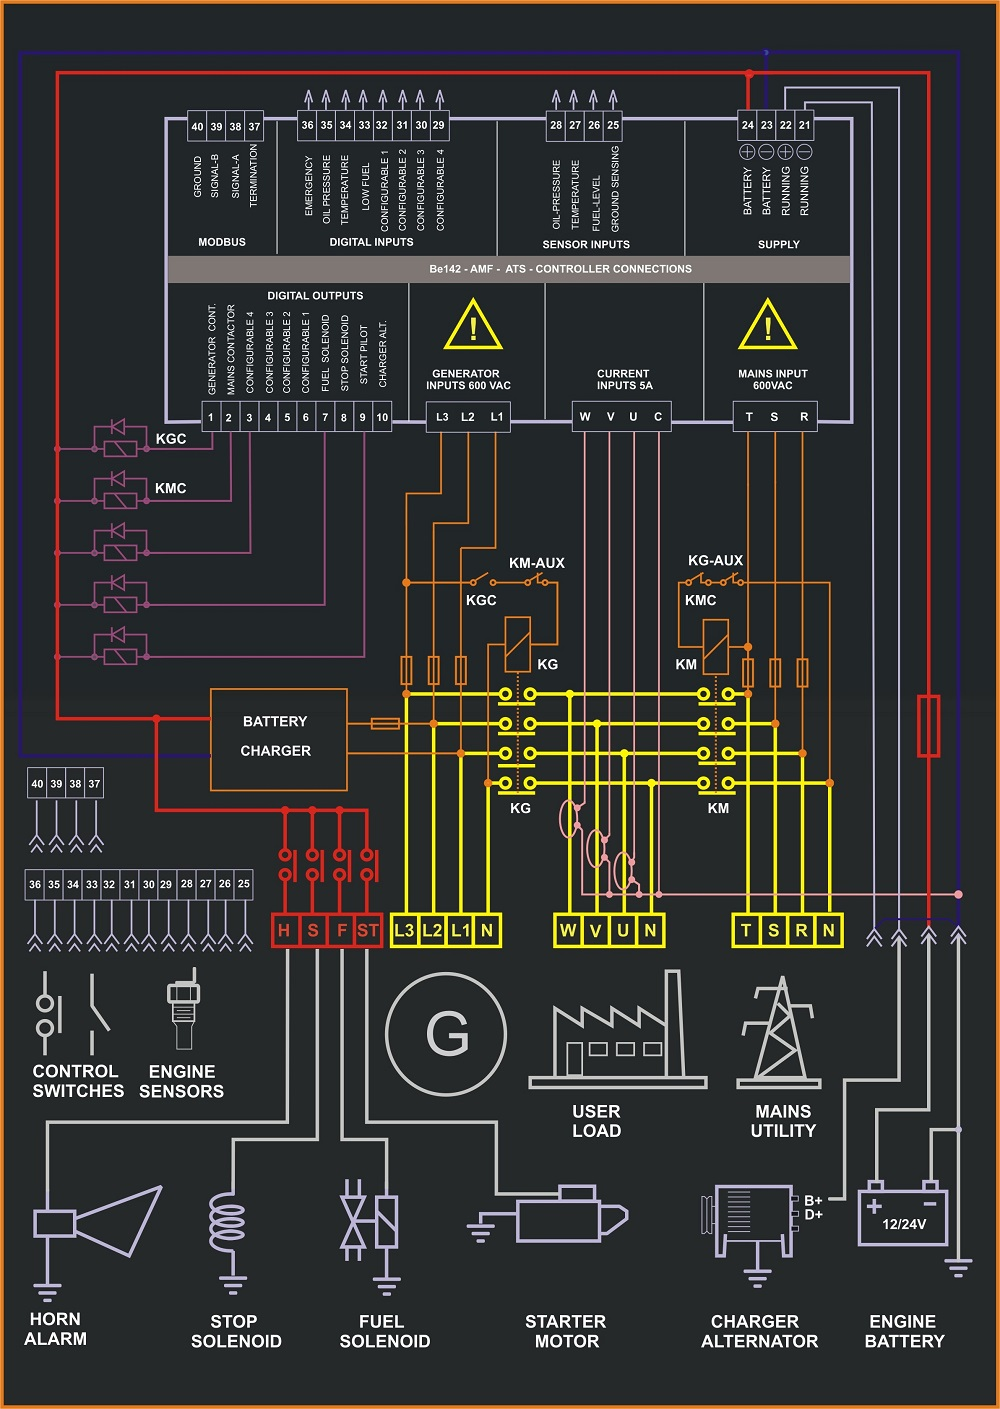 Automatic mains failure control panel typical wiring diagram